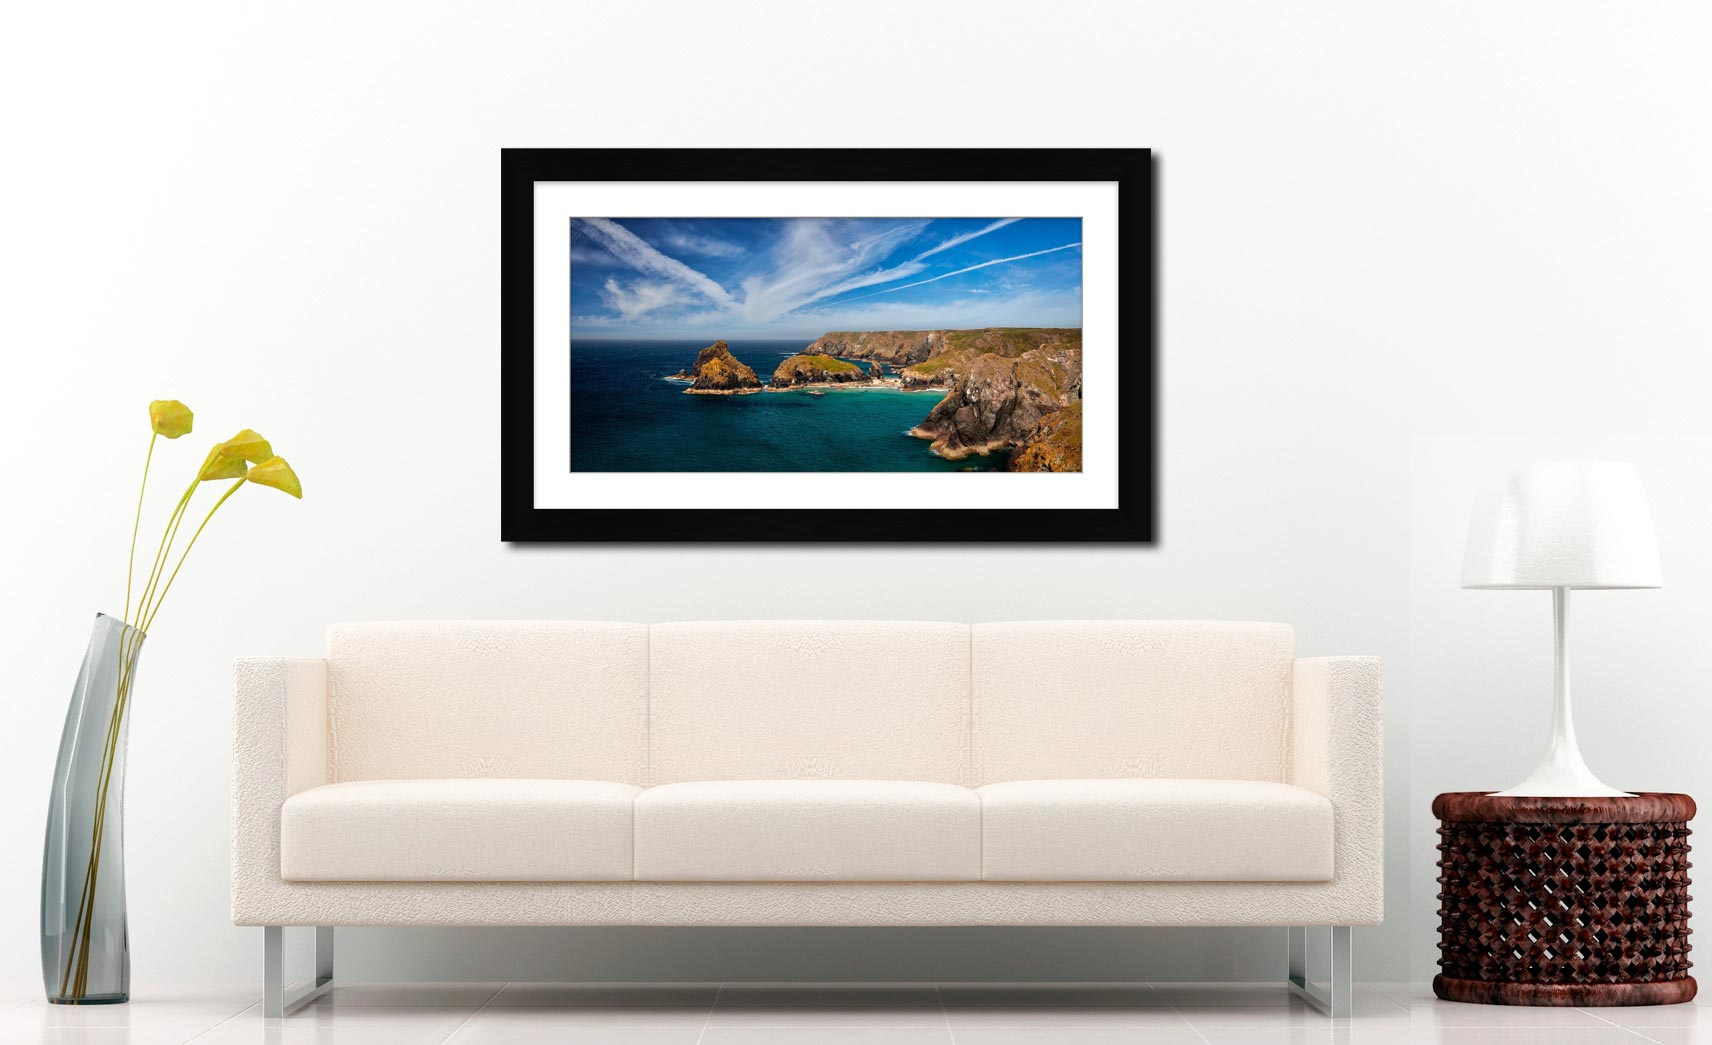 Green Ocean Kynance Cove - Framed Print with Mount on Wall